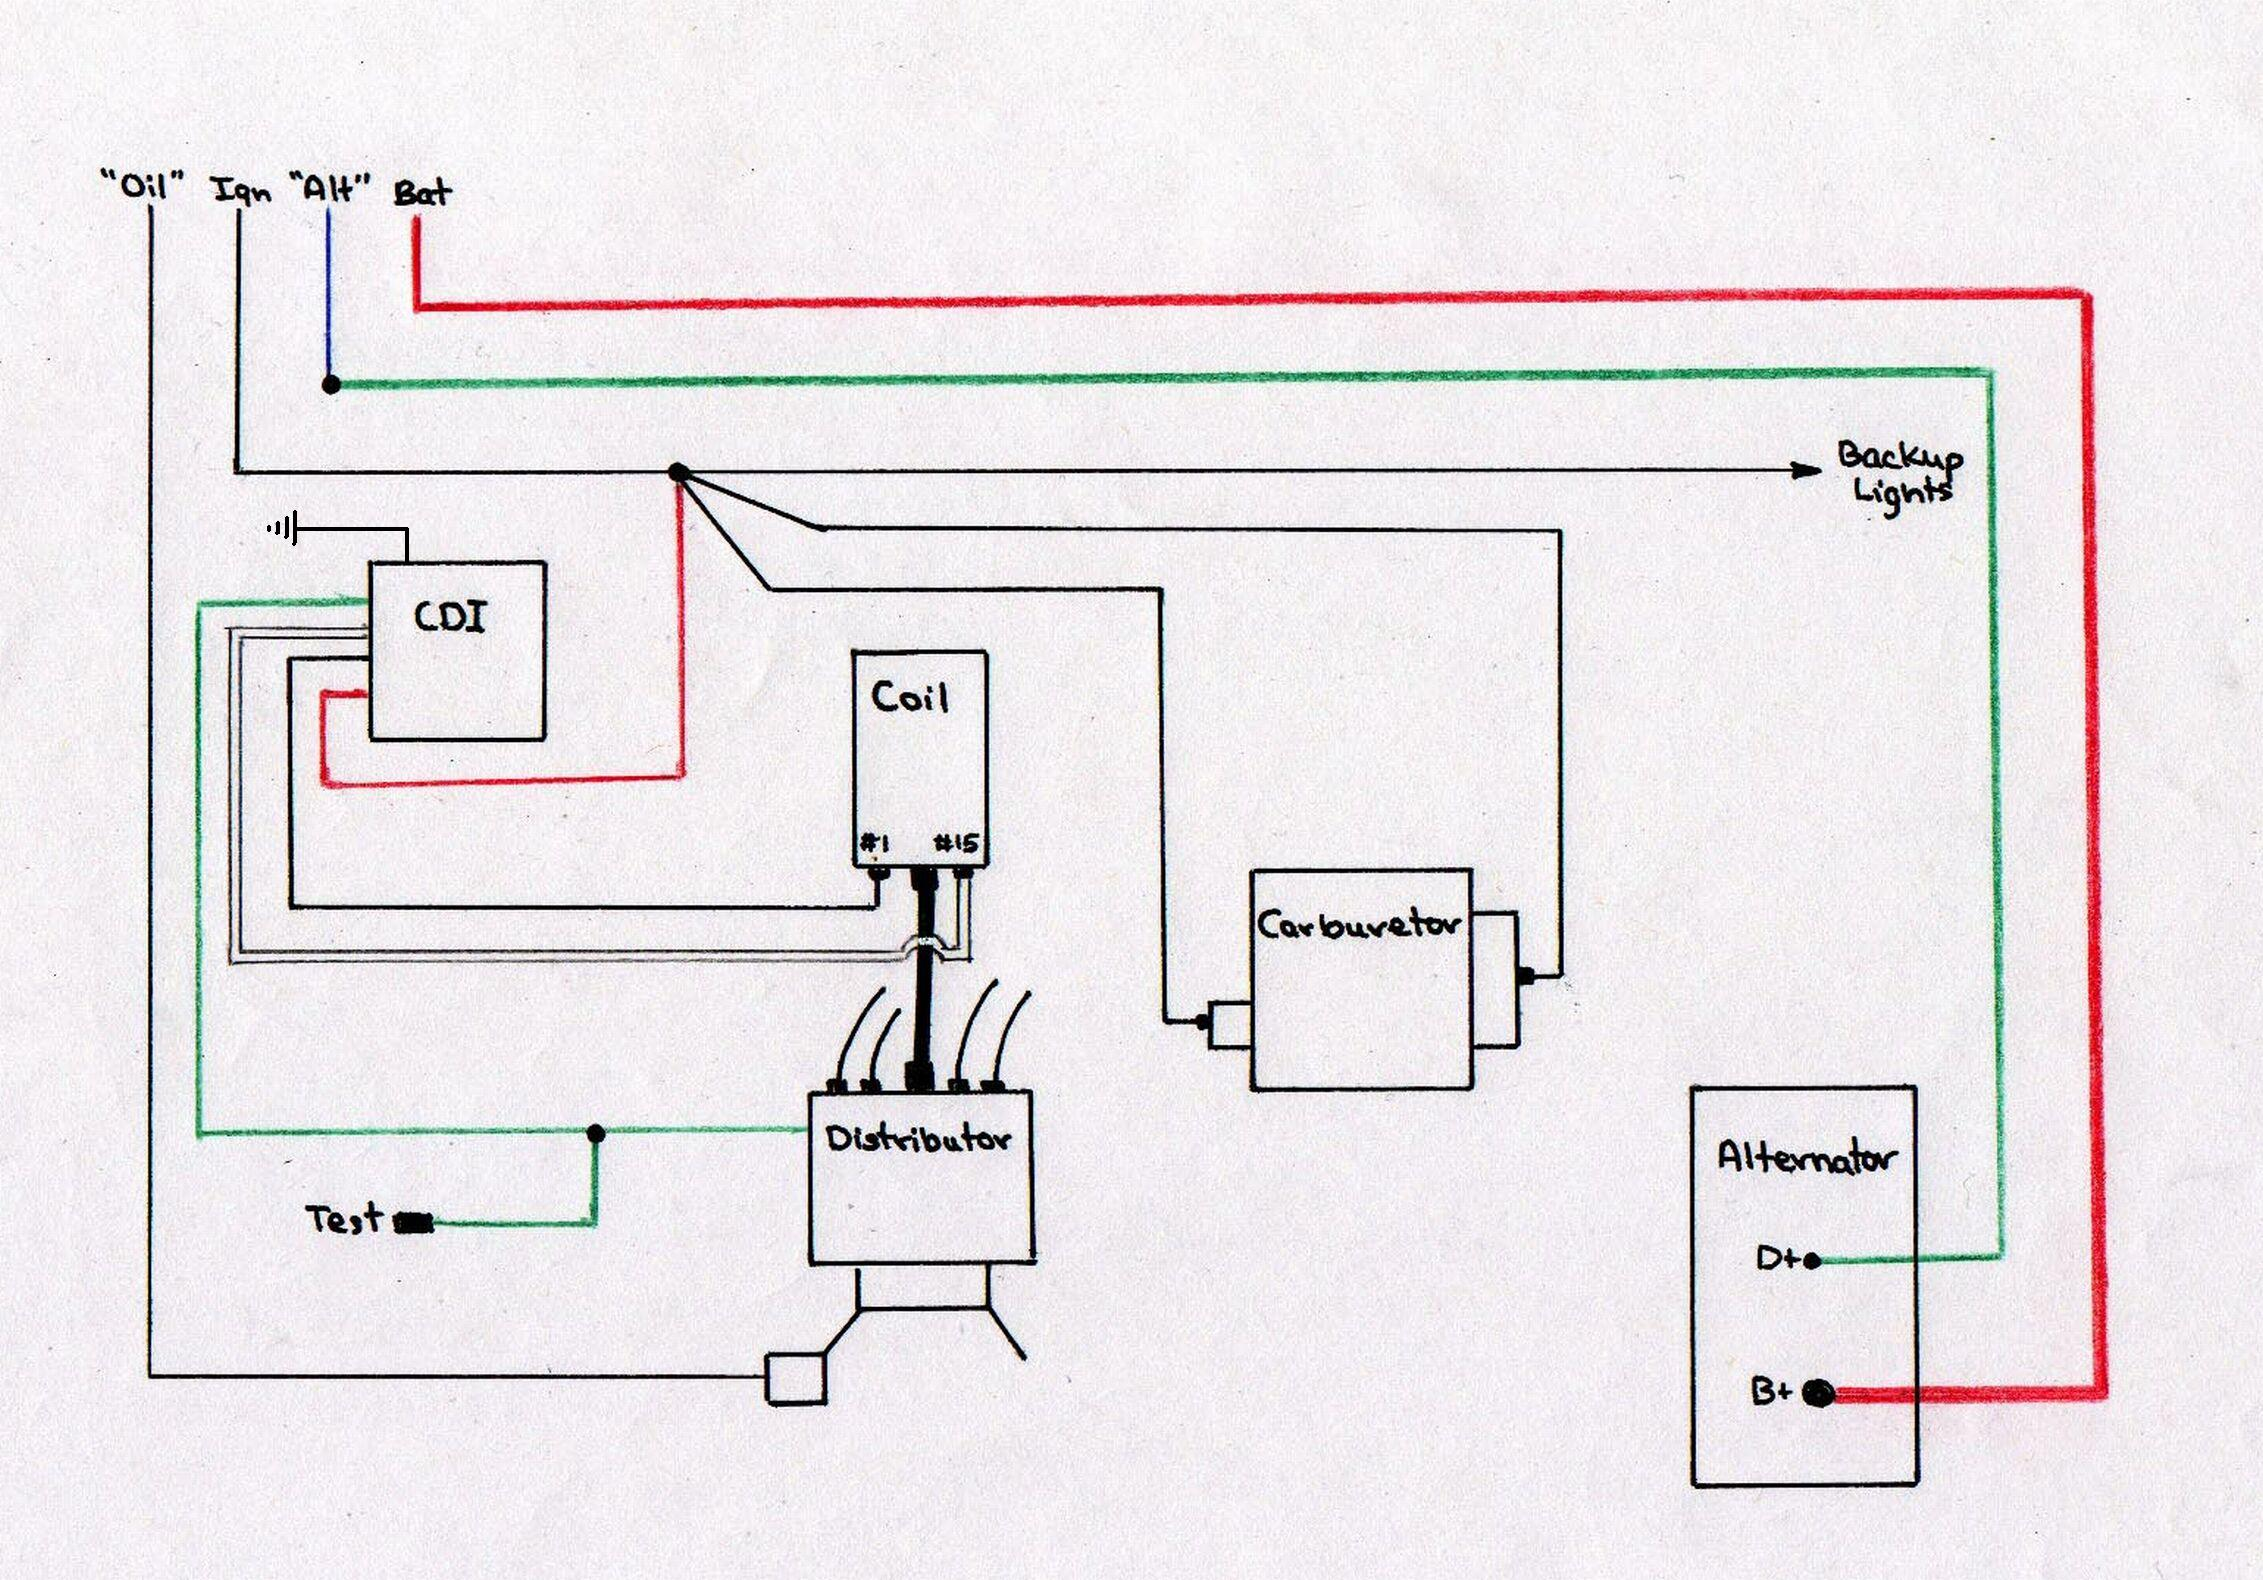 Simple Wiring Diagram For Lights On Atv Open Close Stop Switch Wiring Diagram For Wiring Diagram Schematics